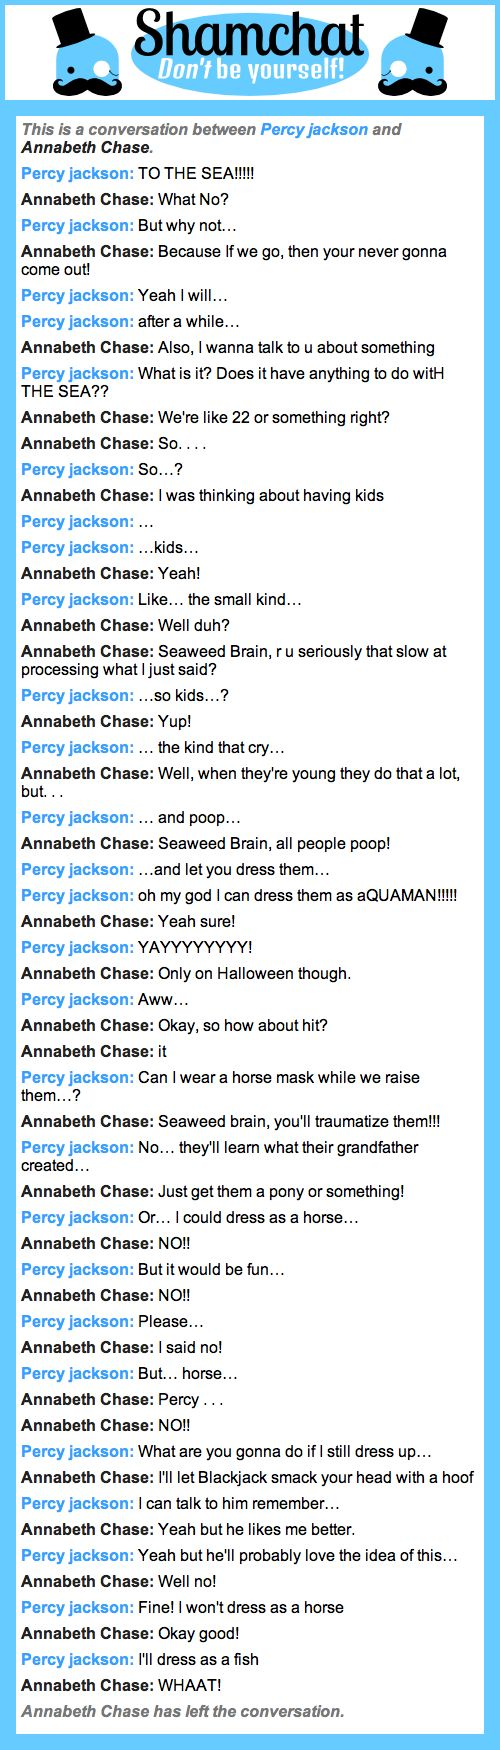 Percy and Annabeth's conversation about having children escalated quickly. xD